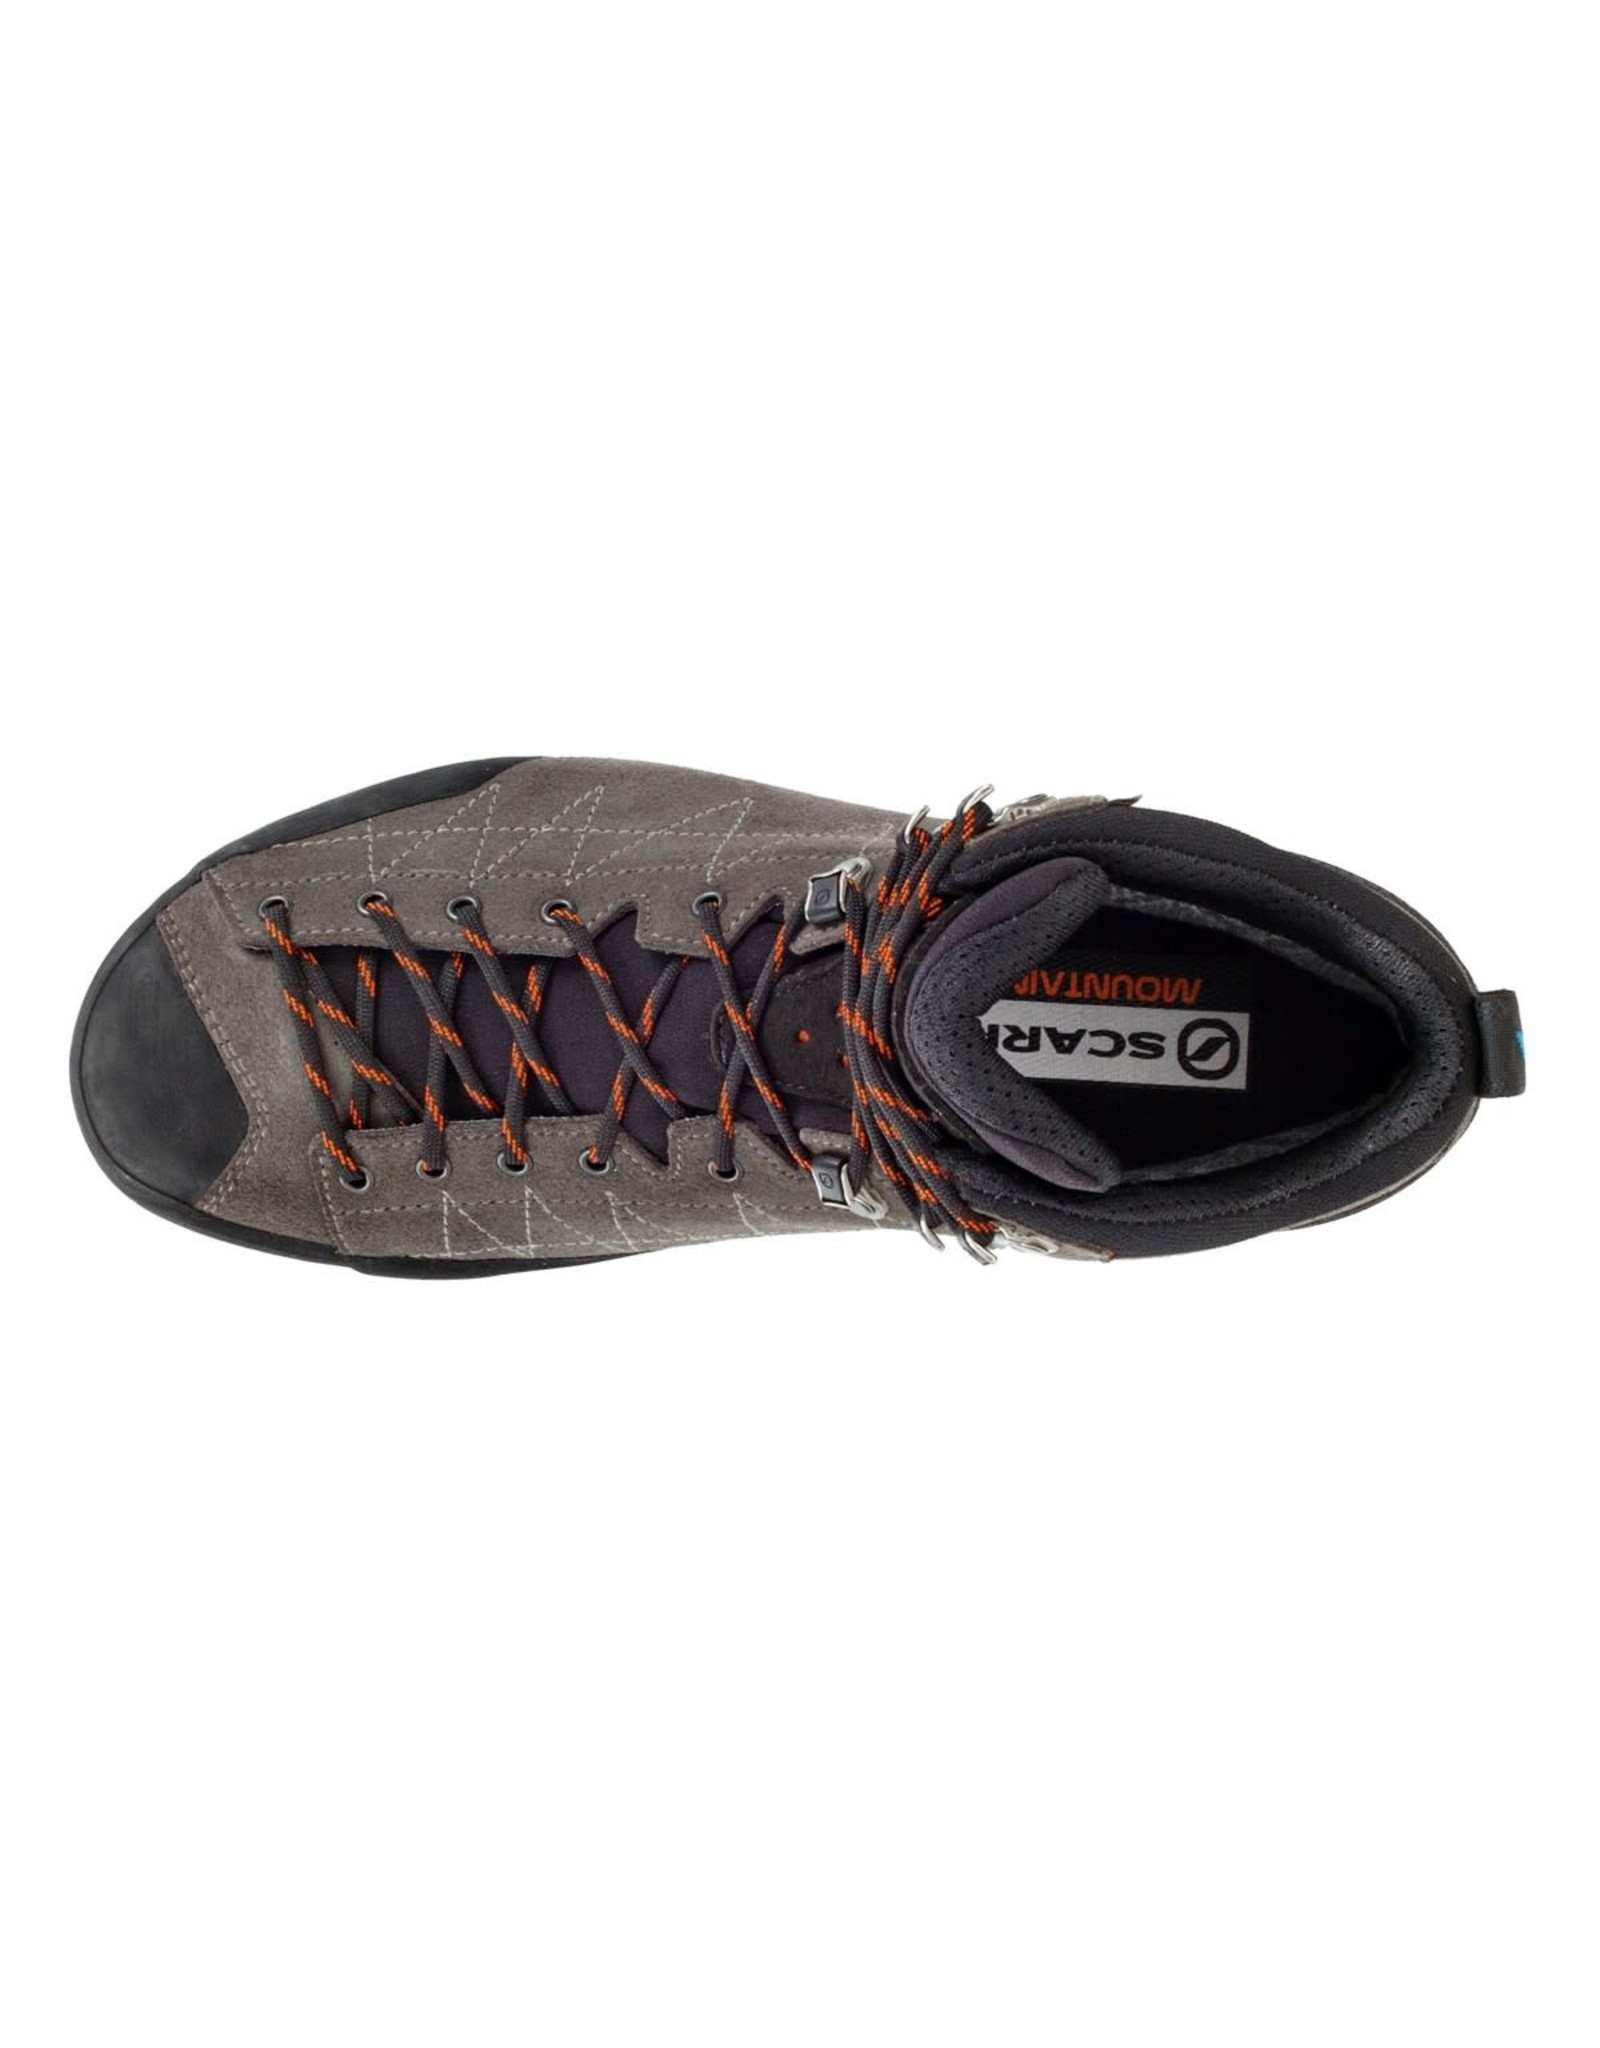 Scarpa Scarpa Zodiac Plus GTX - Men